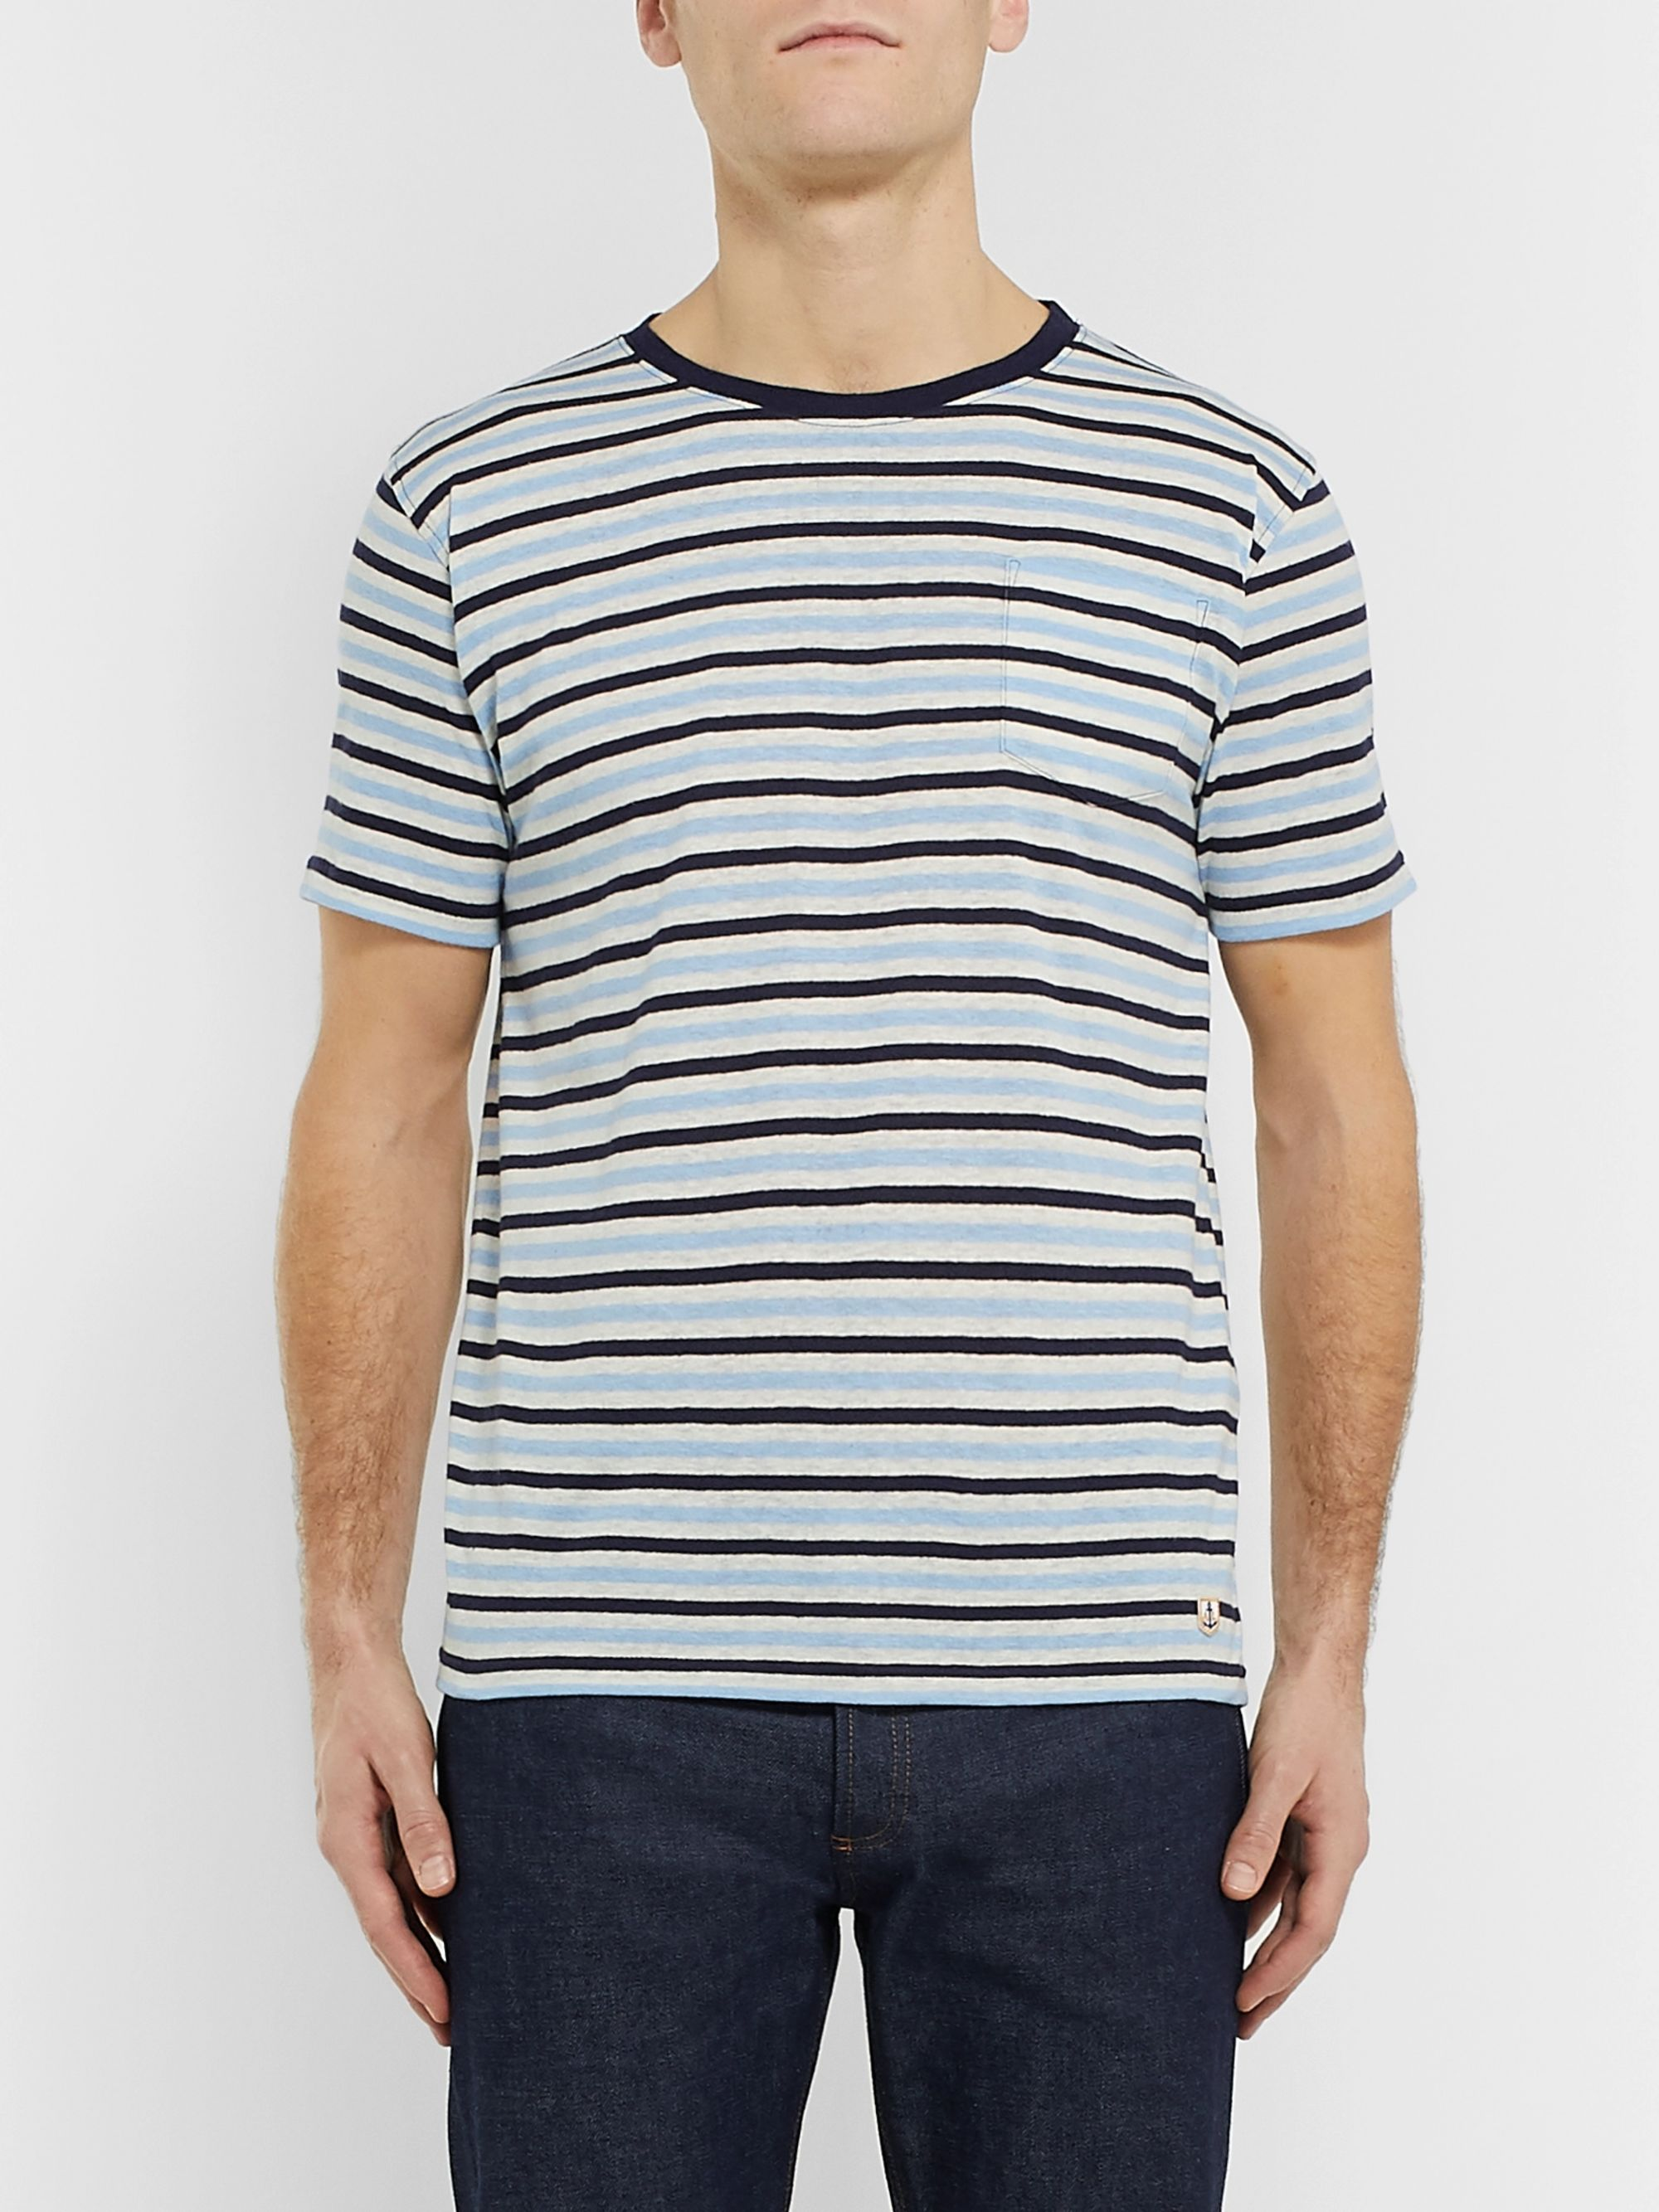 Armor Lux Héritage Striped Cotton and Linen-Blend T-Shirt